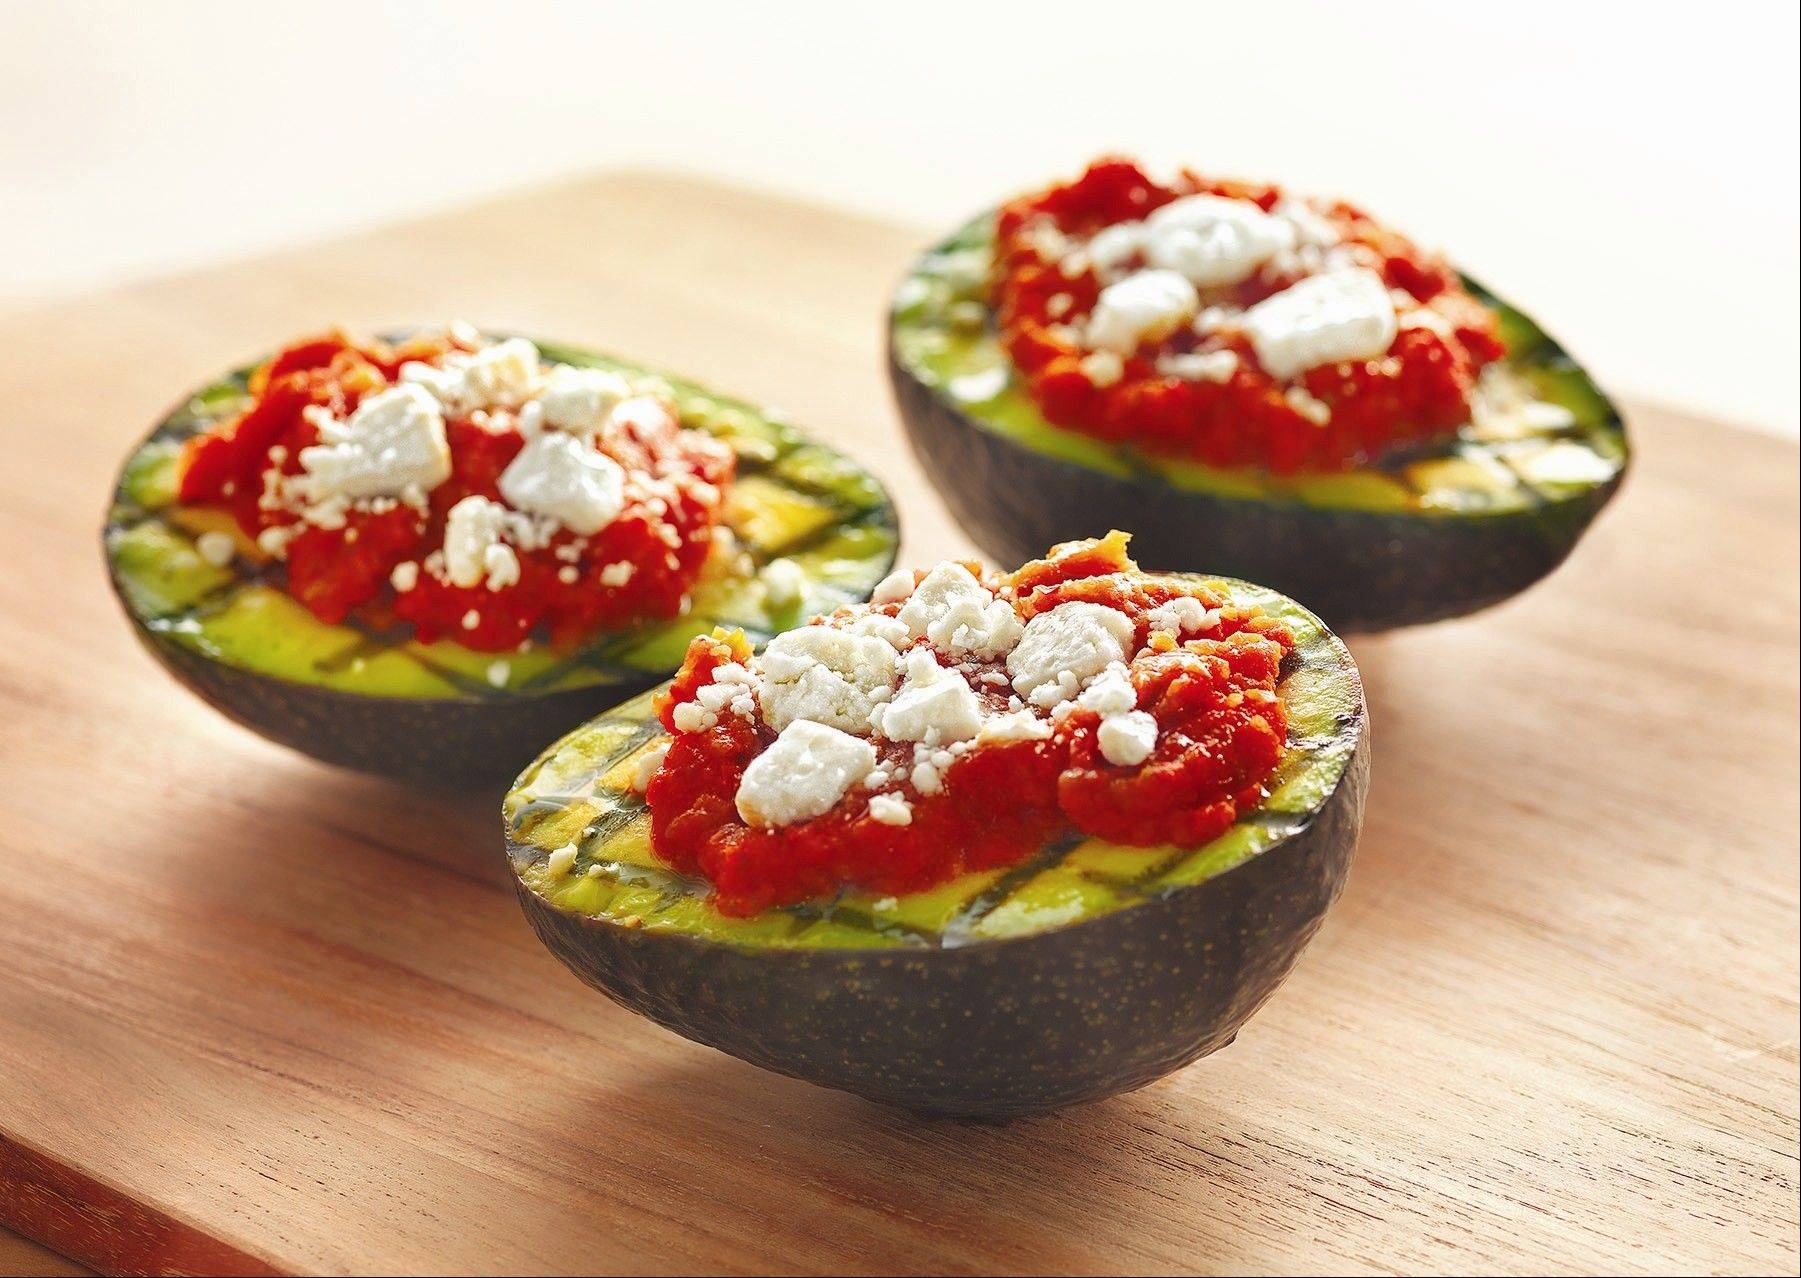 Grilled avocado halves make a refreshing serving shell for grilled vegetable relish.